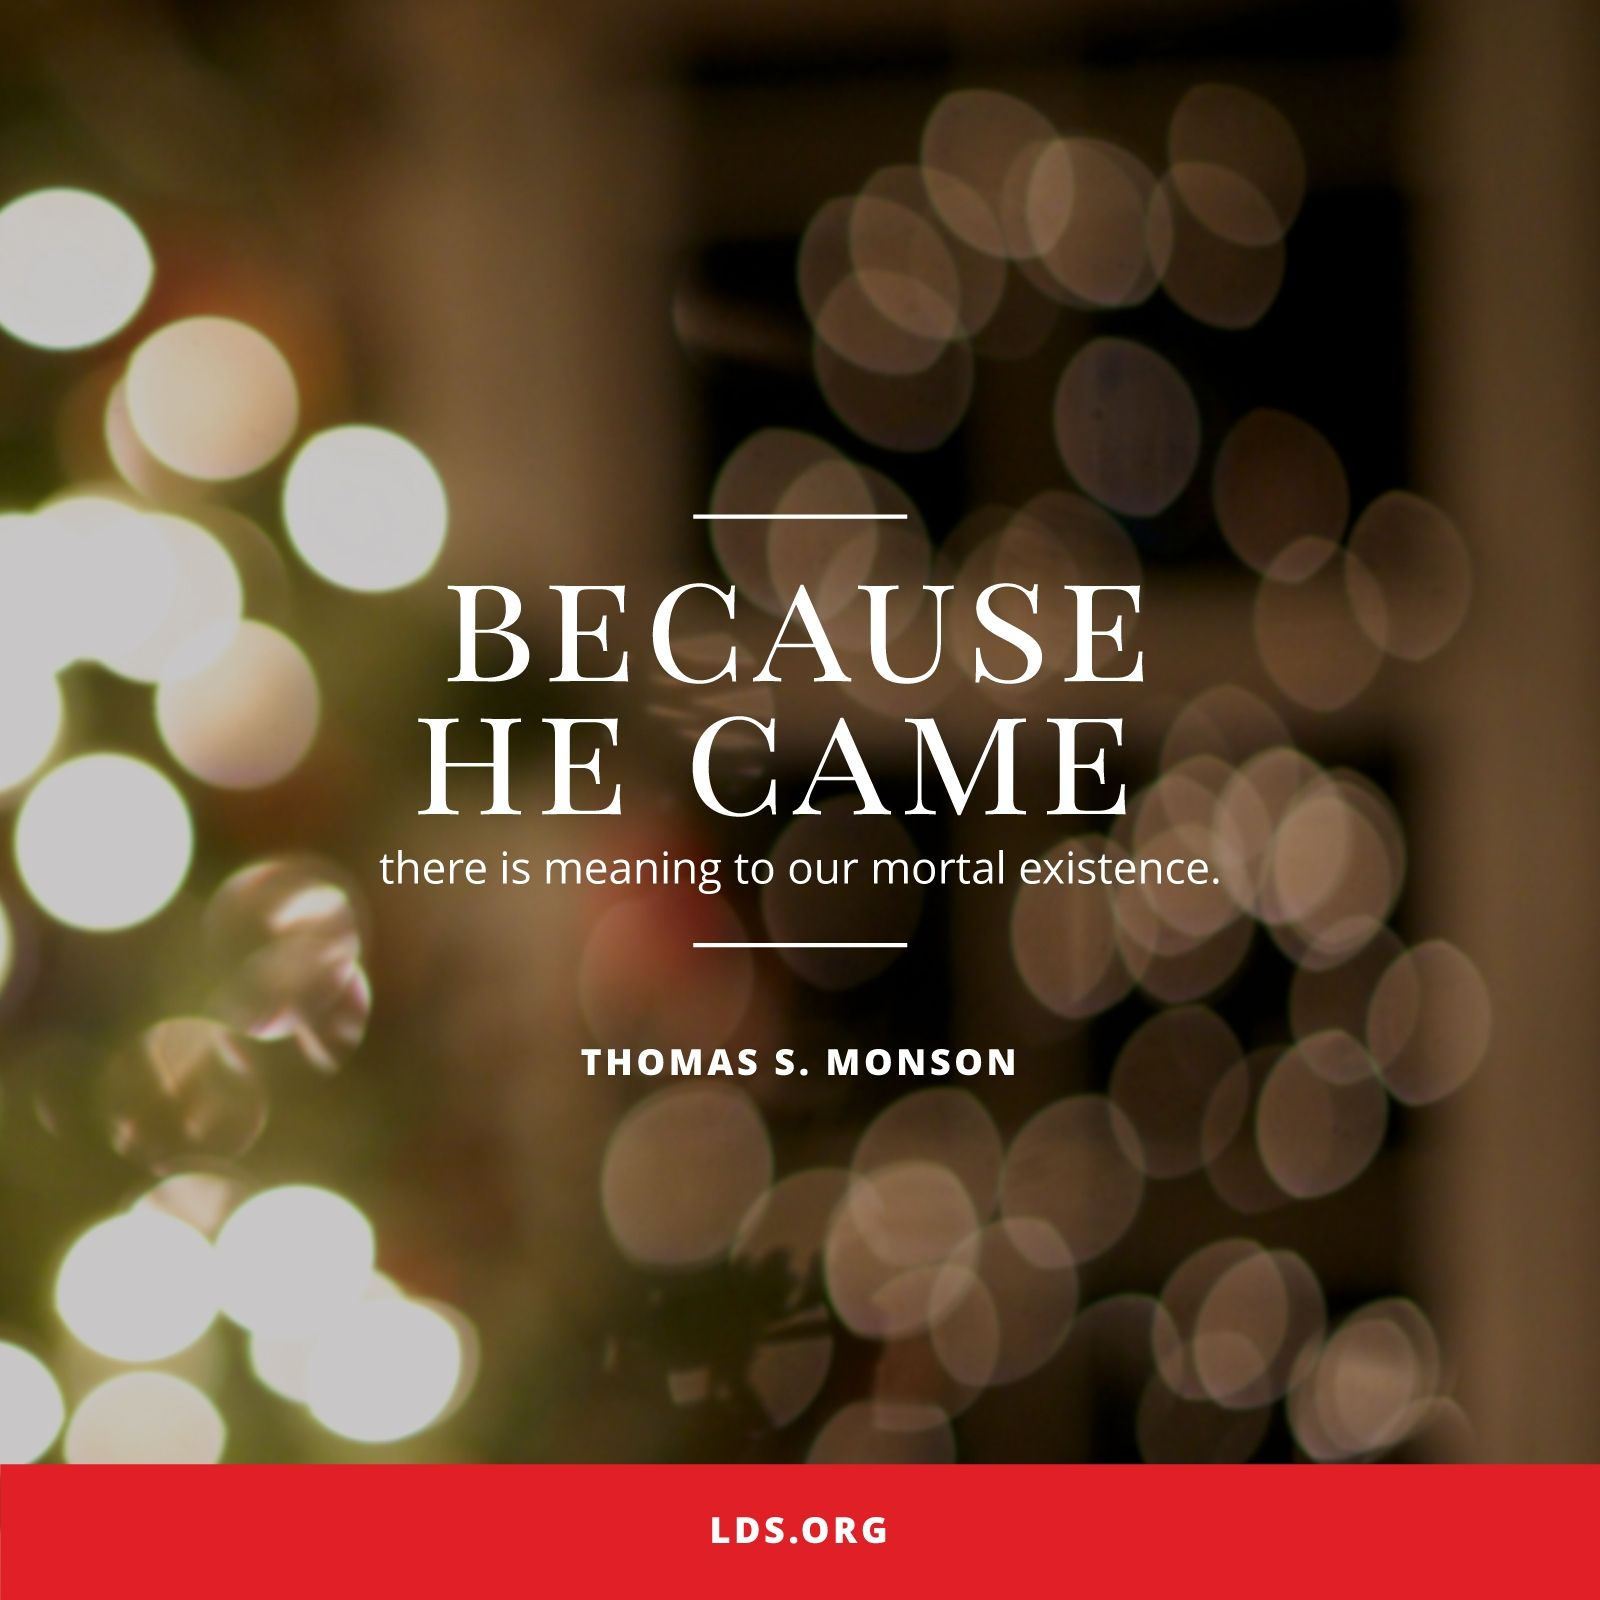 """""""Because He came, there is meaning to our mortal existence.""""—President Thomas S. Monson, """"Because He Came"""""""